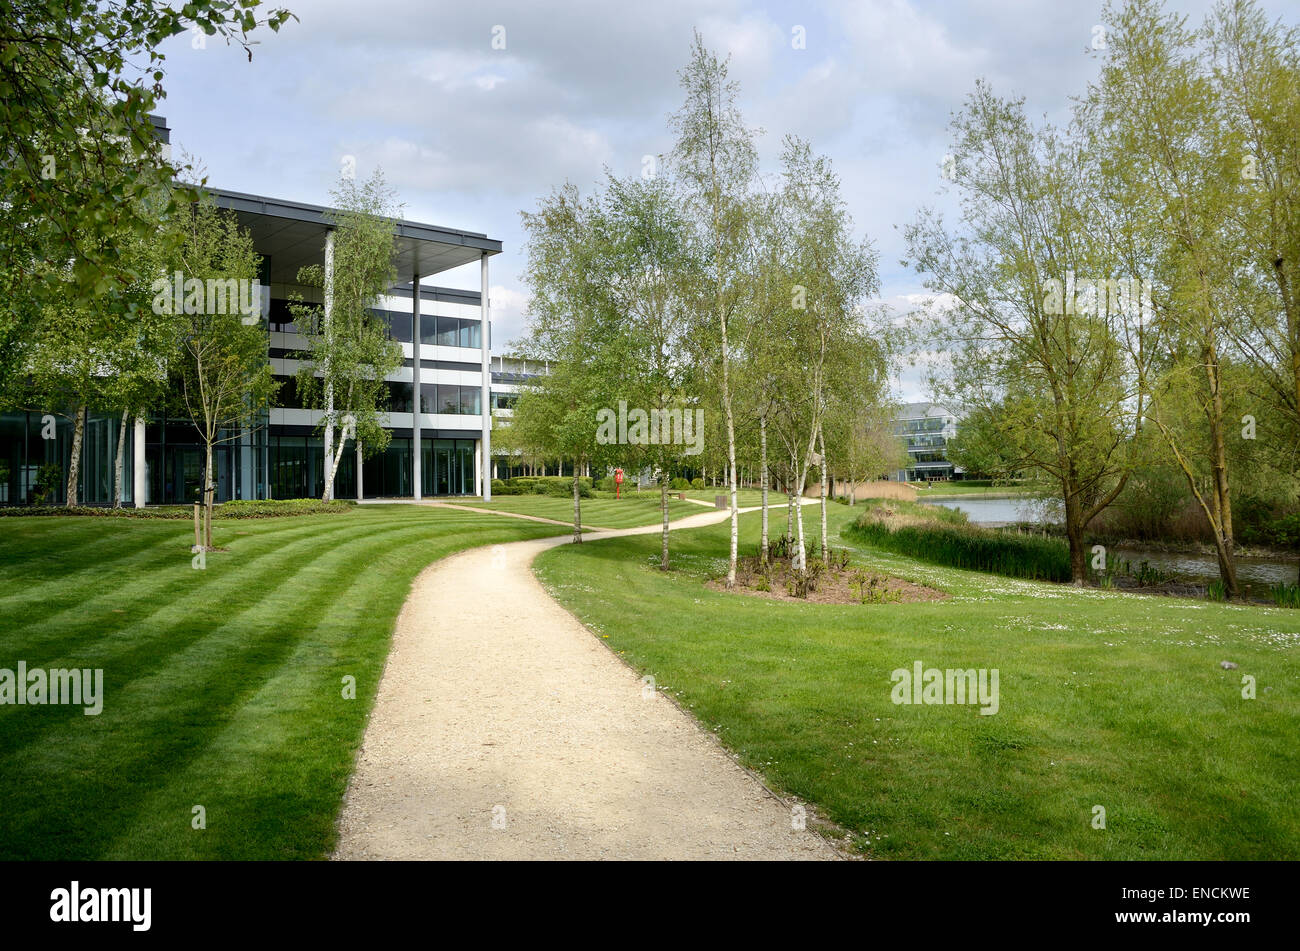 A view of the path leading around the lake at Green Park, Reading. Stock Photo